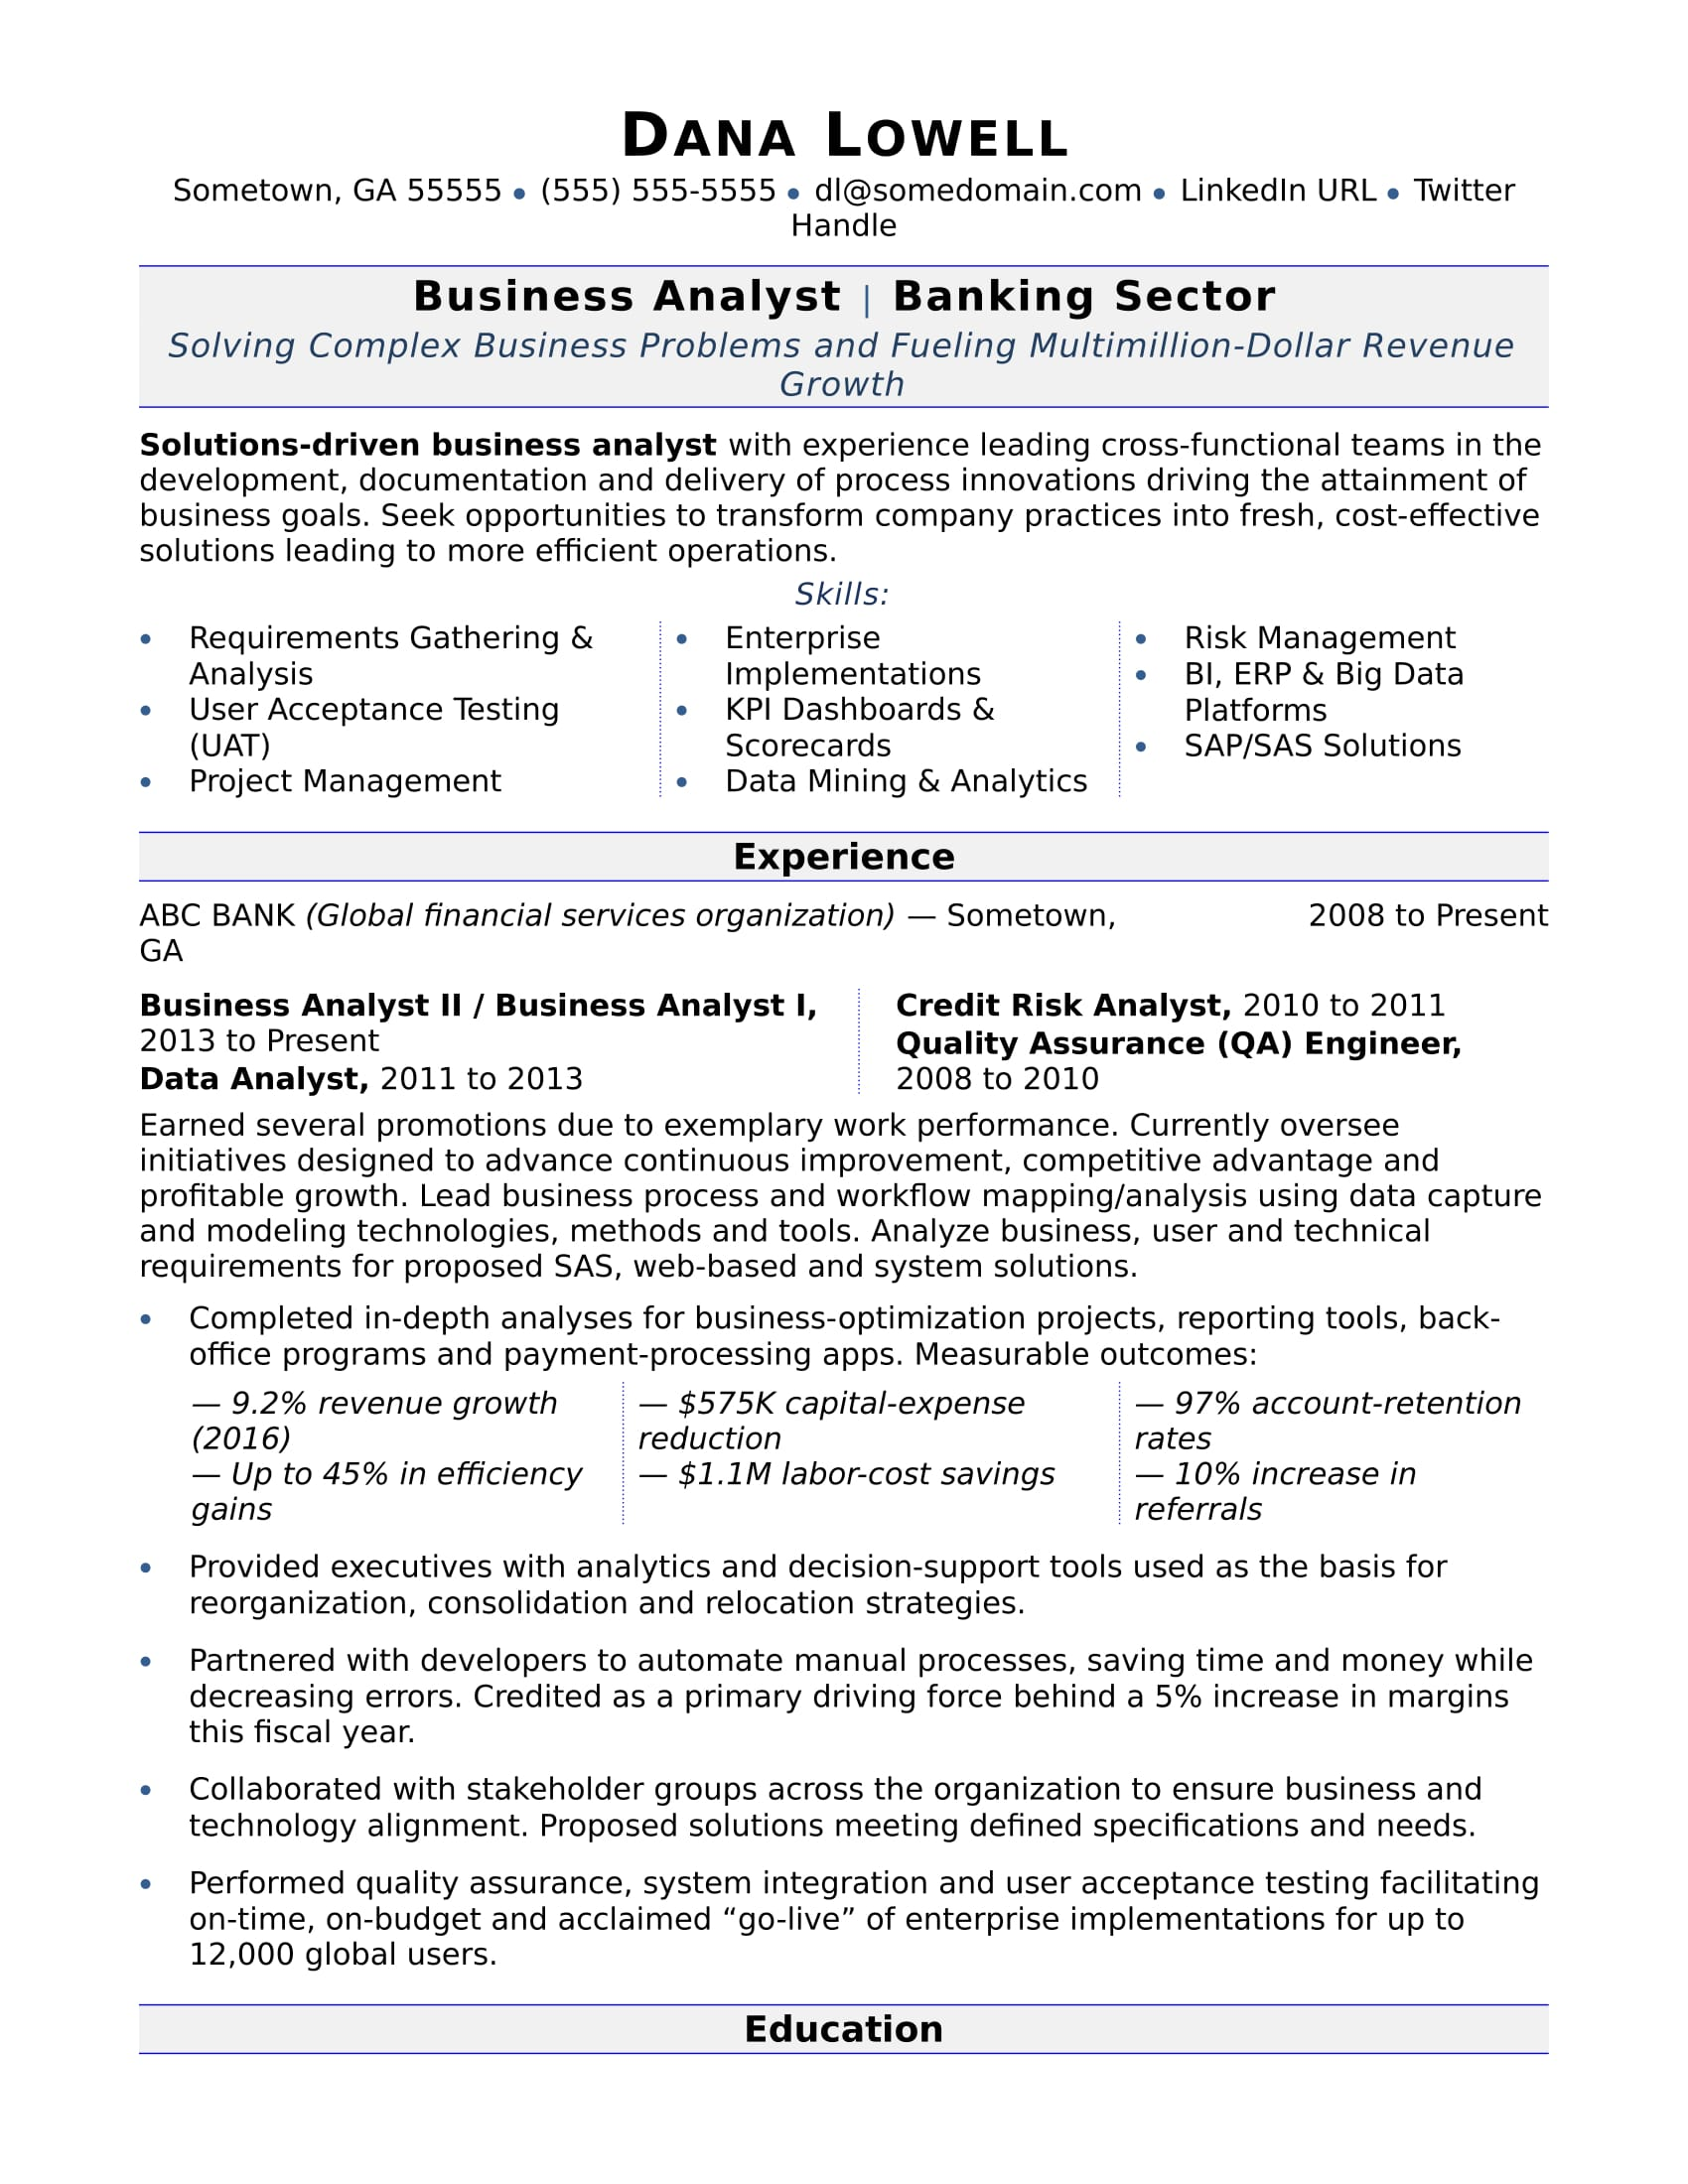 business analyst resume sample monster best operations businessanalyst retiree examples Resume Best Operations Analyst Resume